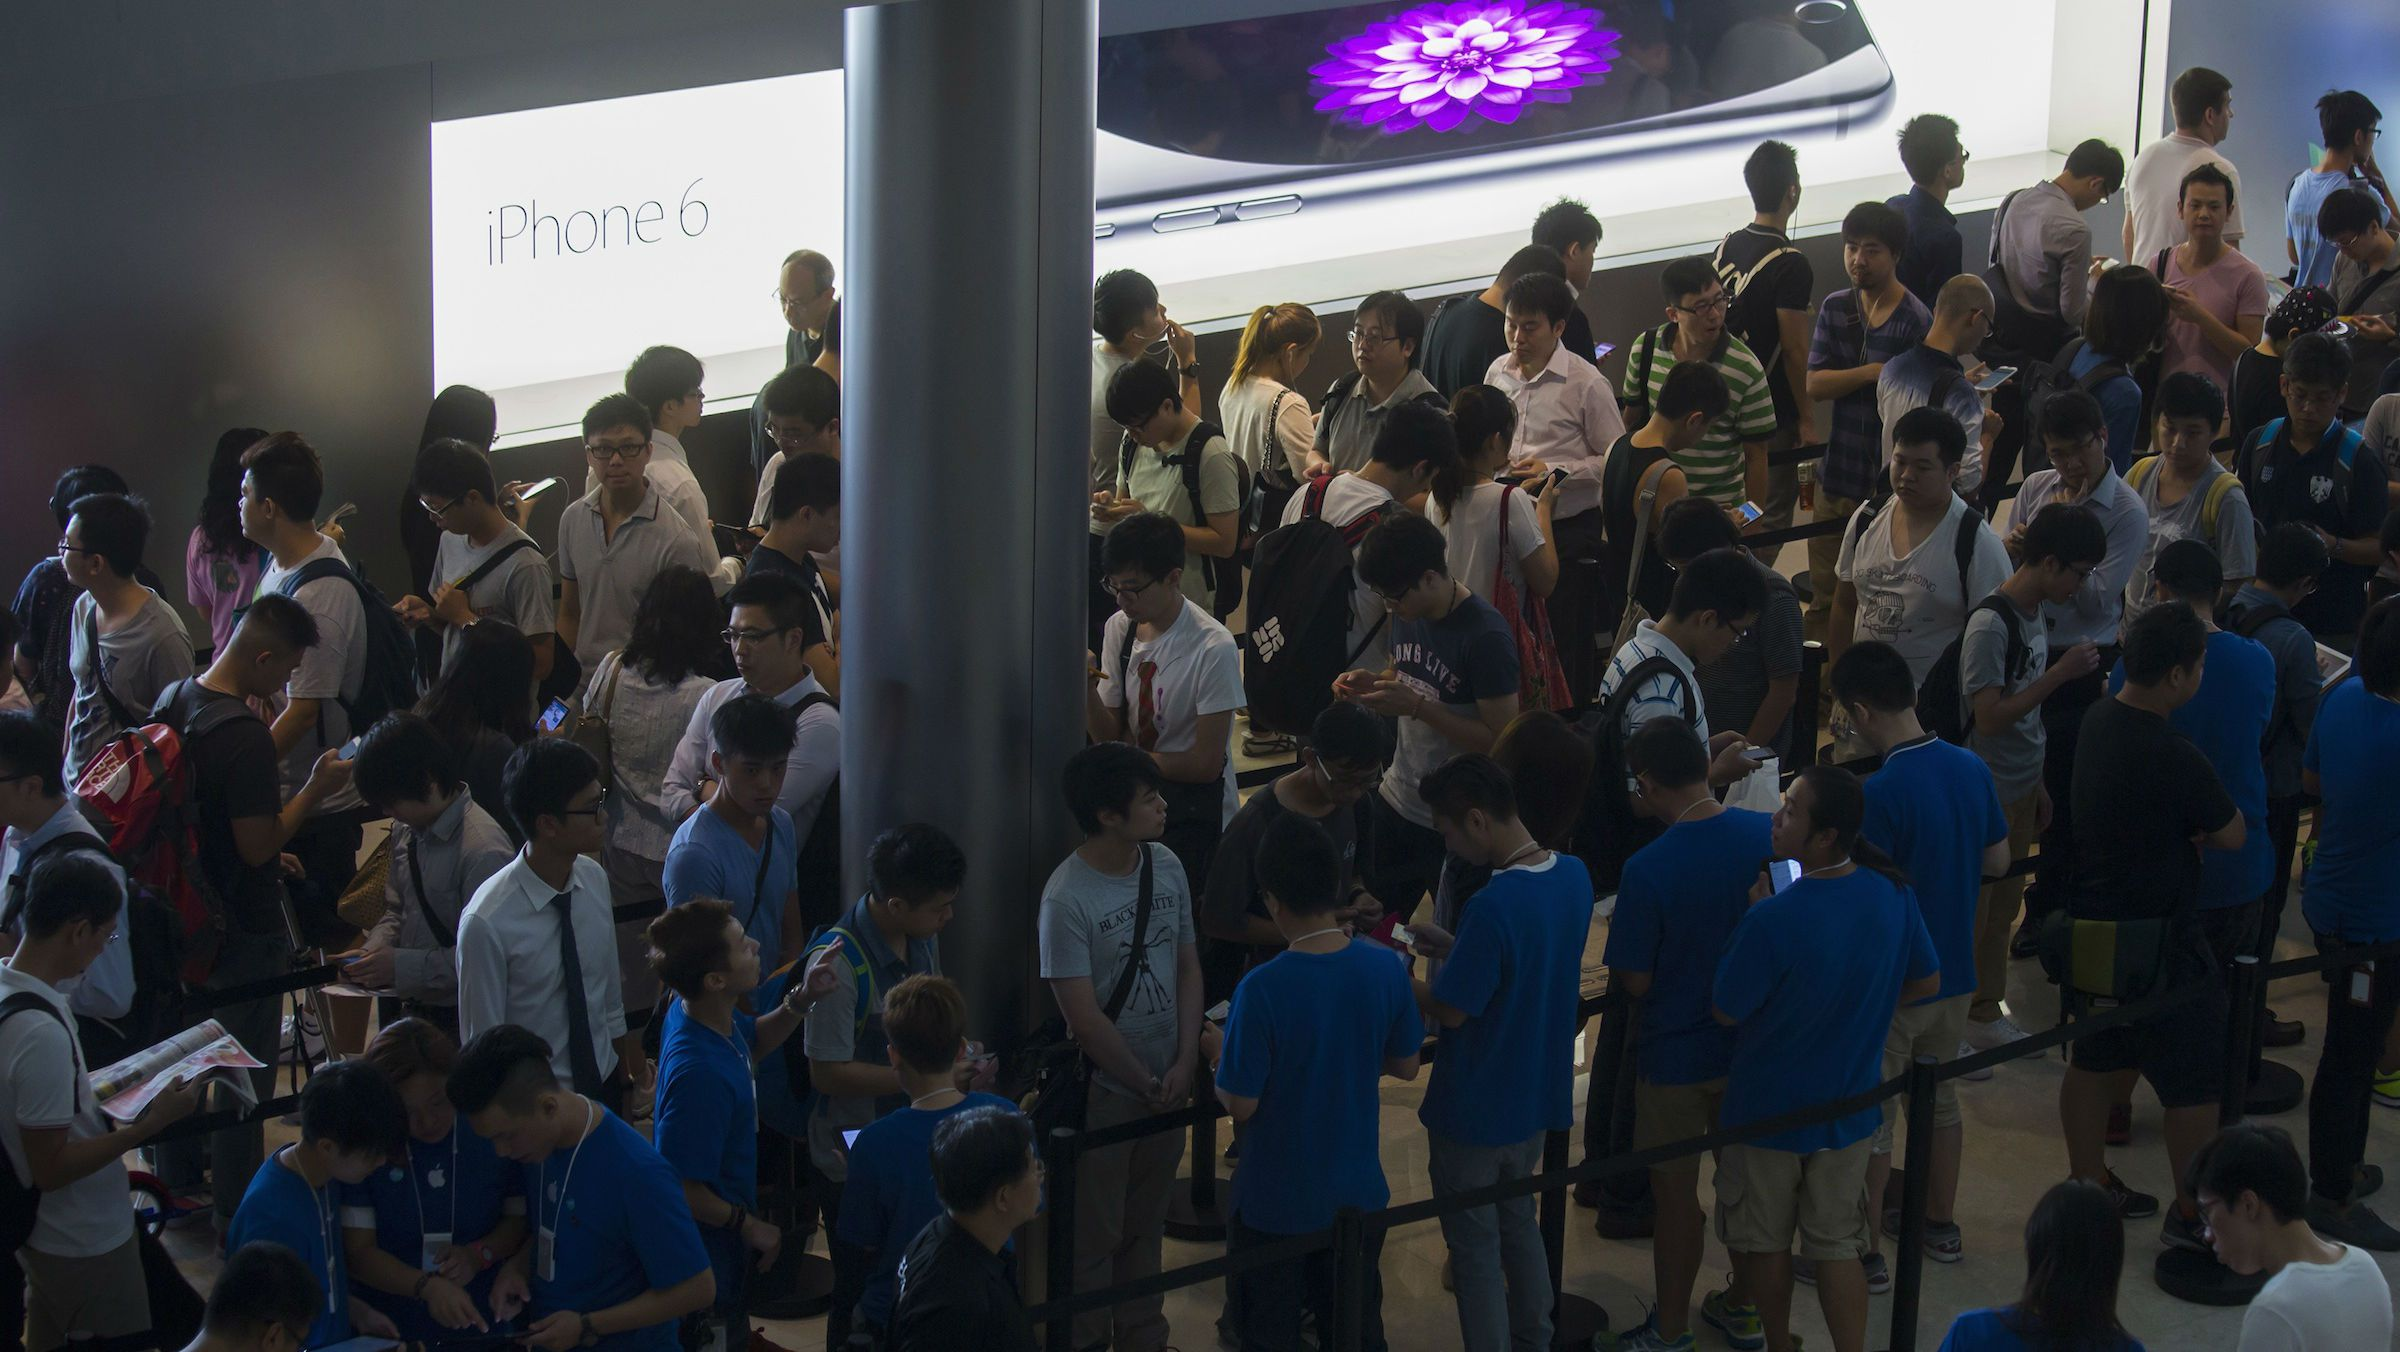 Customers stand in a line on the first day of sale for the iPhone 6 and iPhone 6 Plus, outside the Apple store in Hong Kong